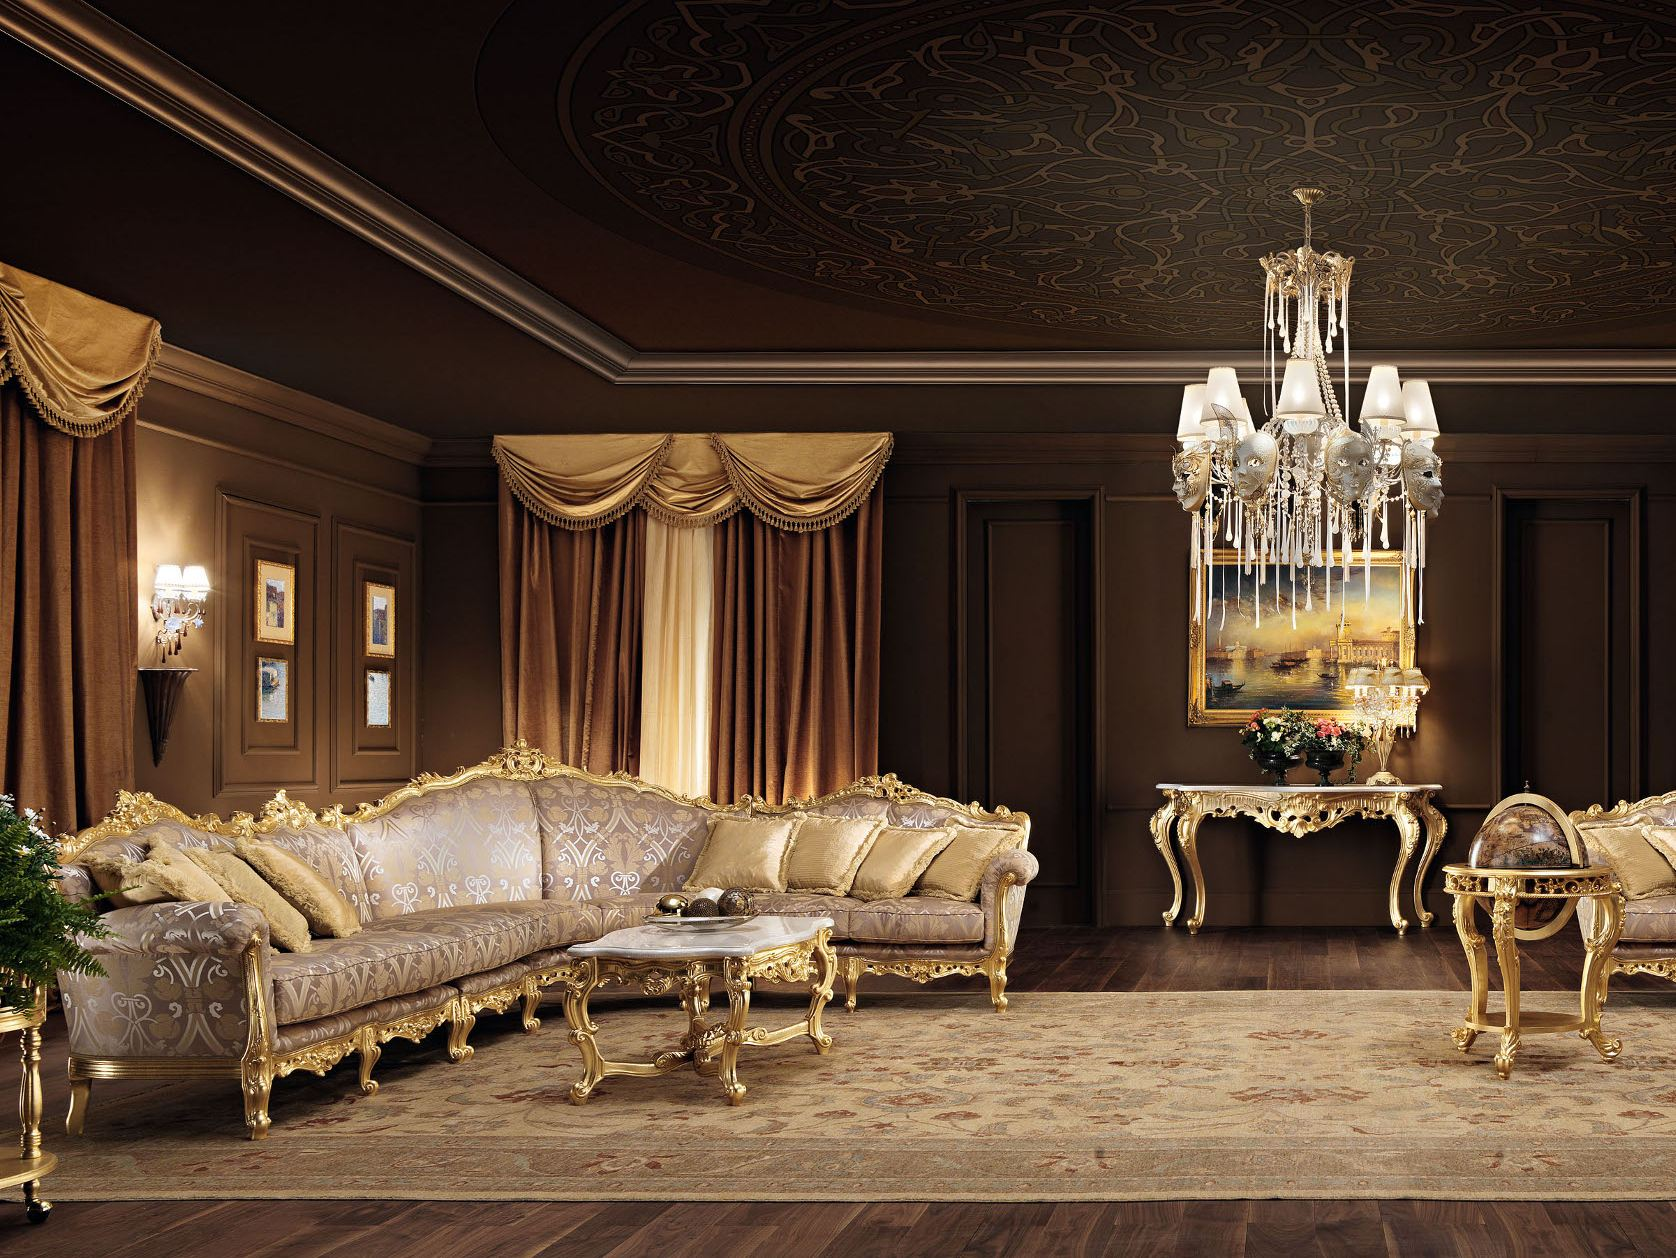 11401 sofa by modenese gastone group for Classic home villa collection